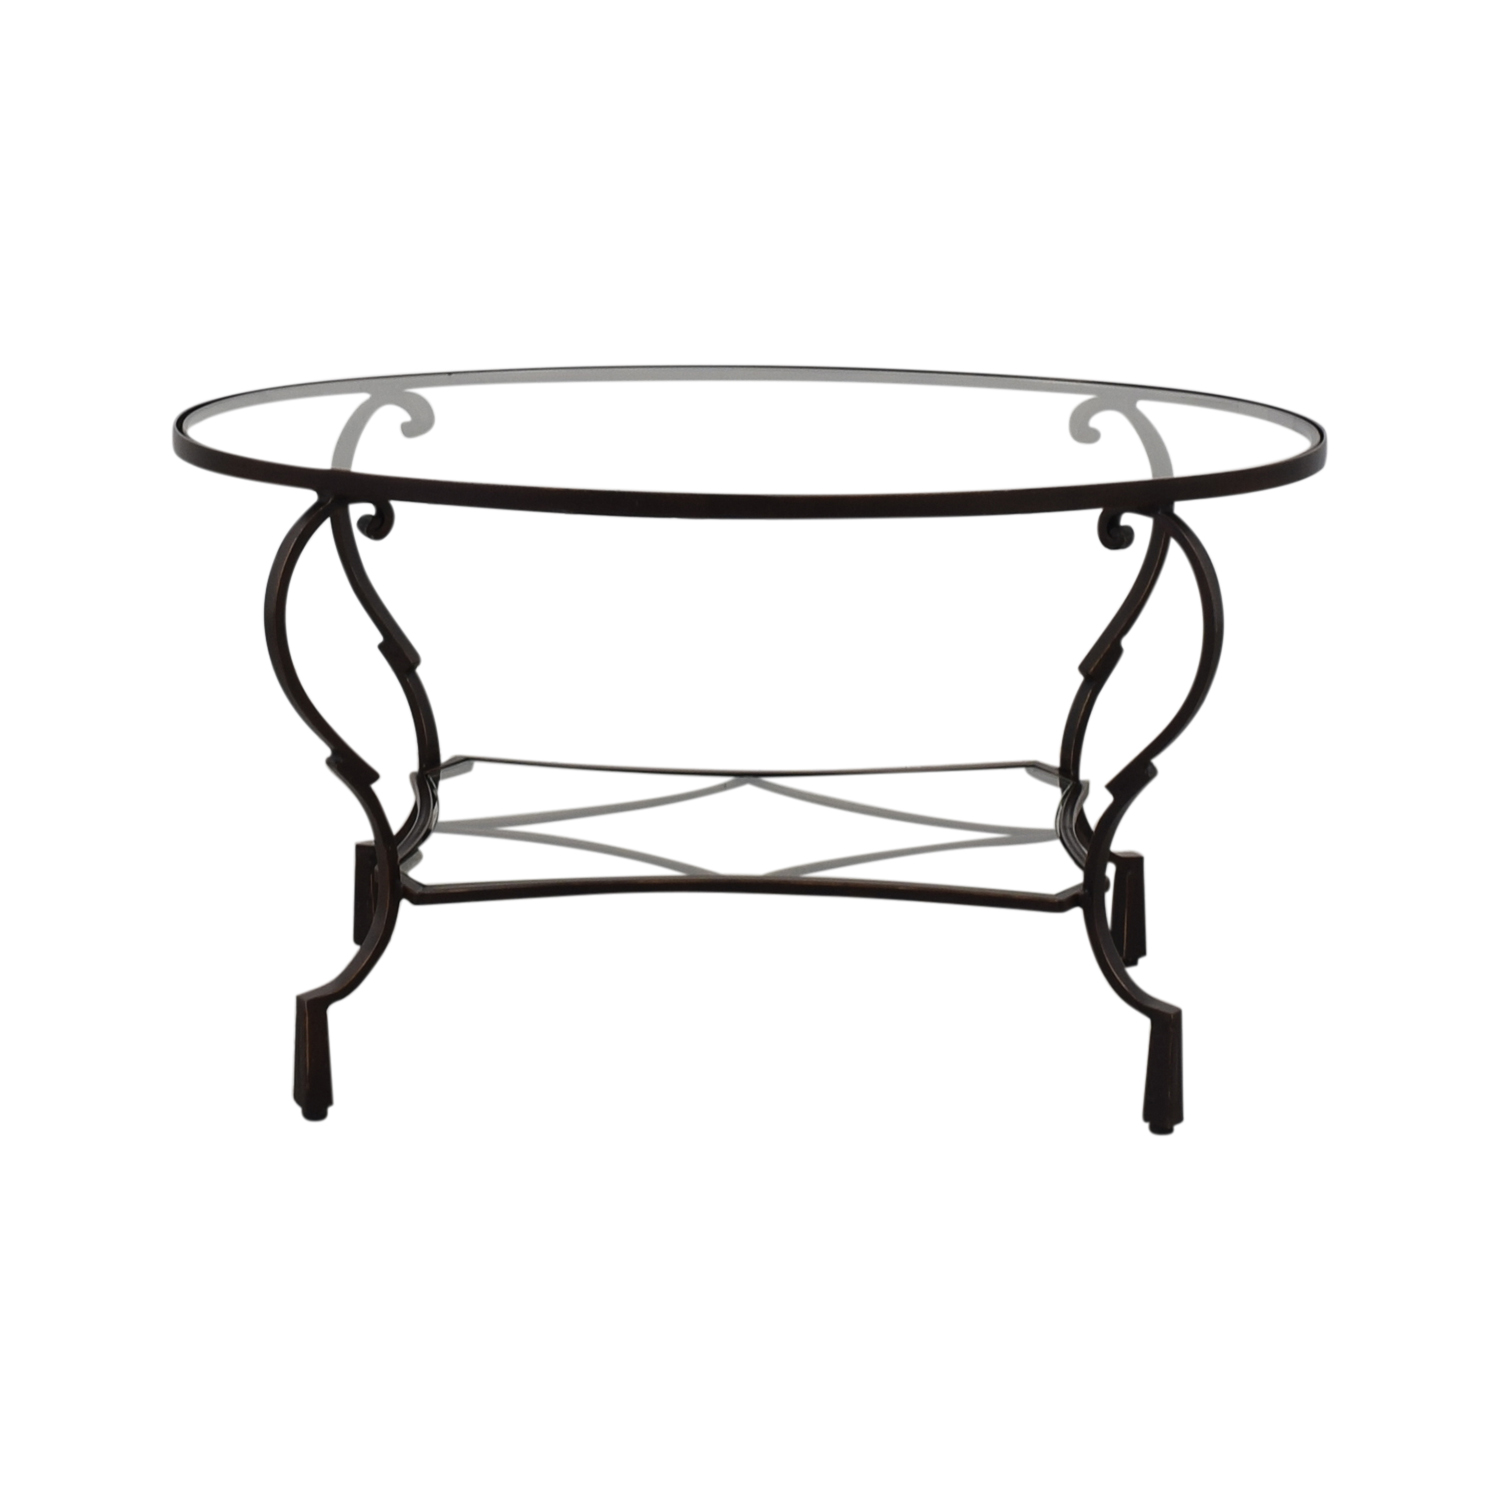 buy Pier 1 Glass Top Brown Oval Coffee Table Pier 1